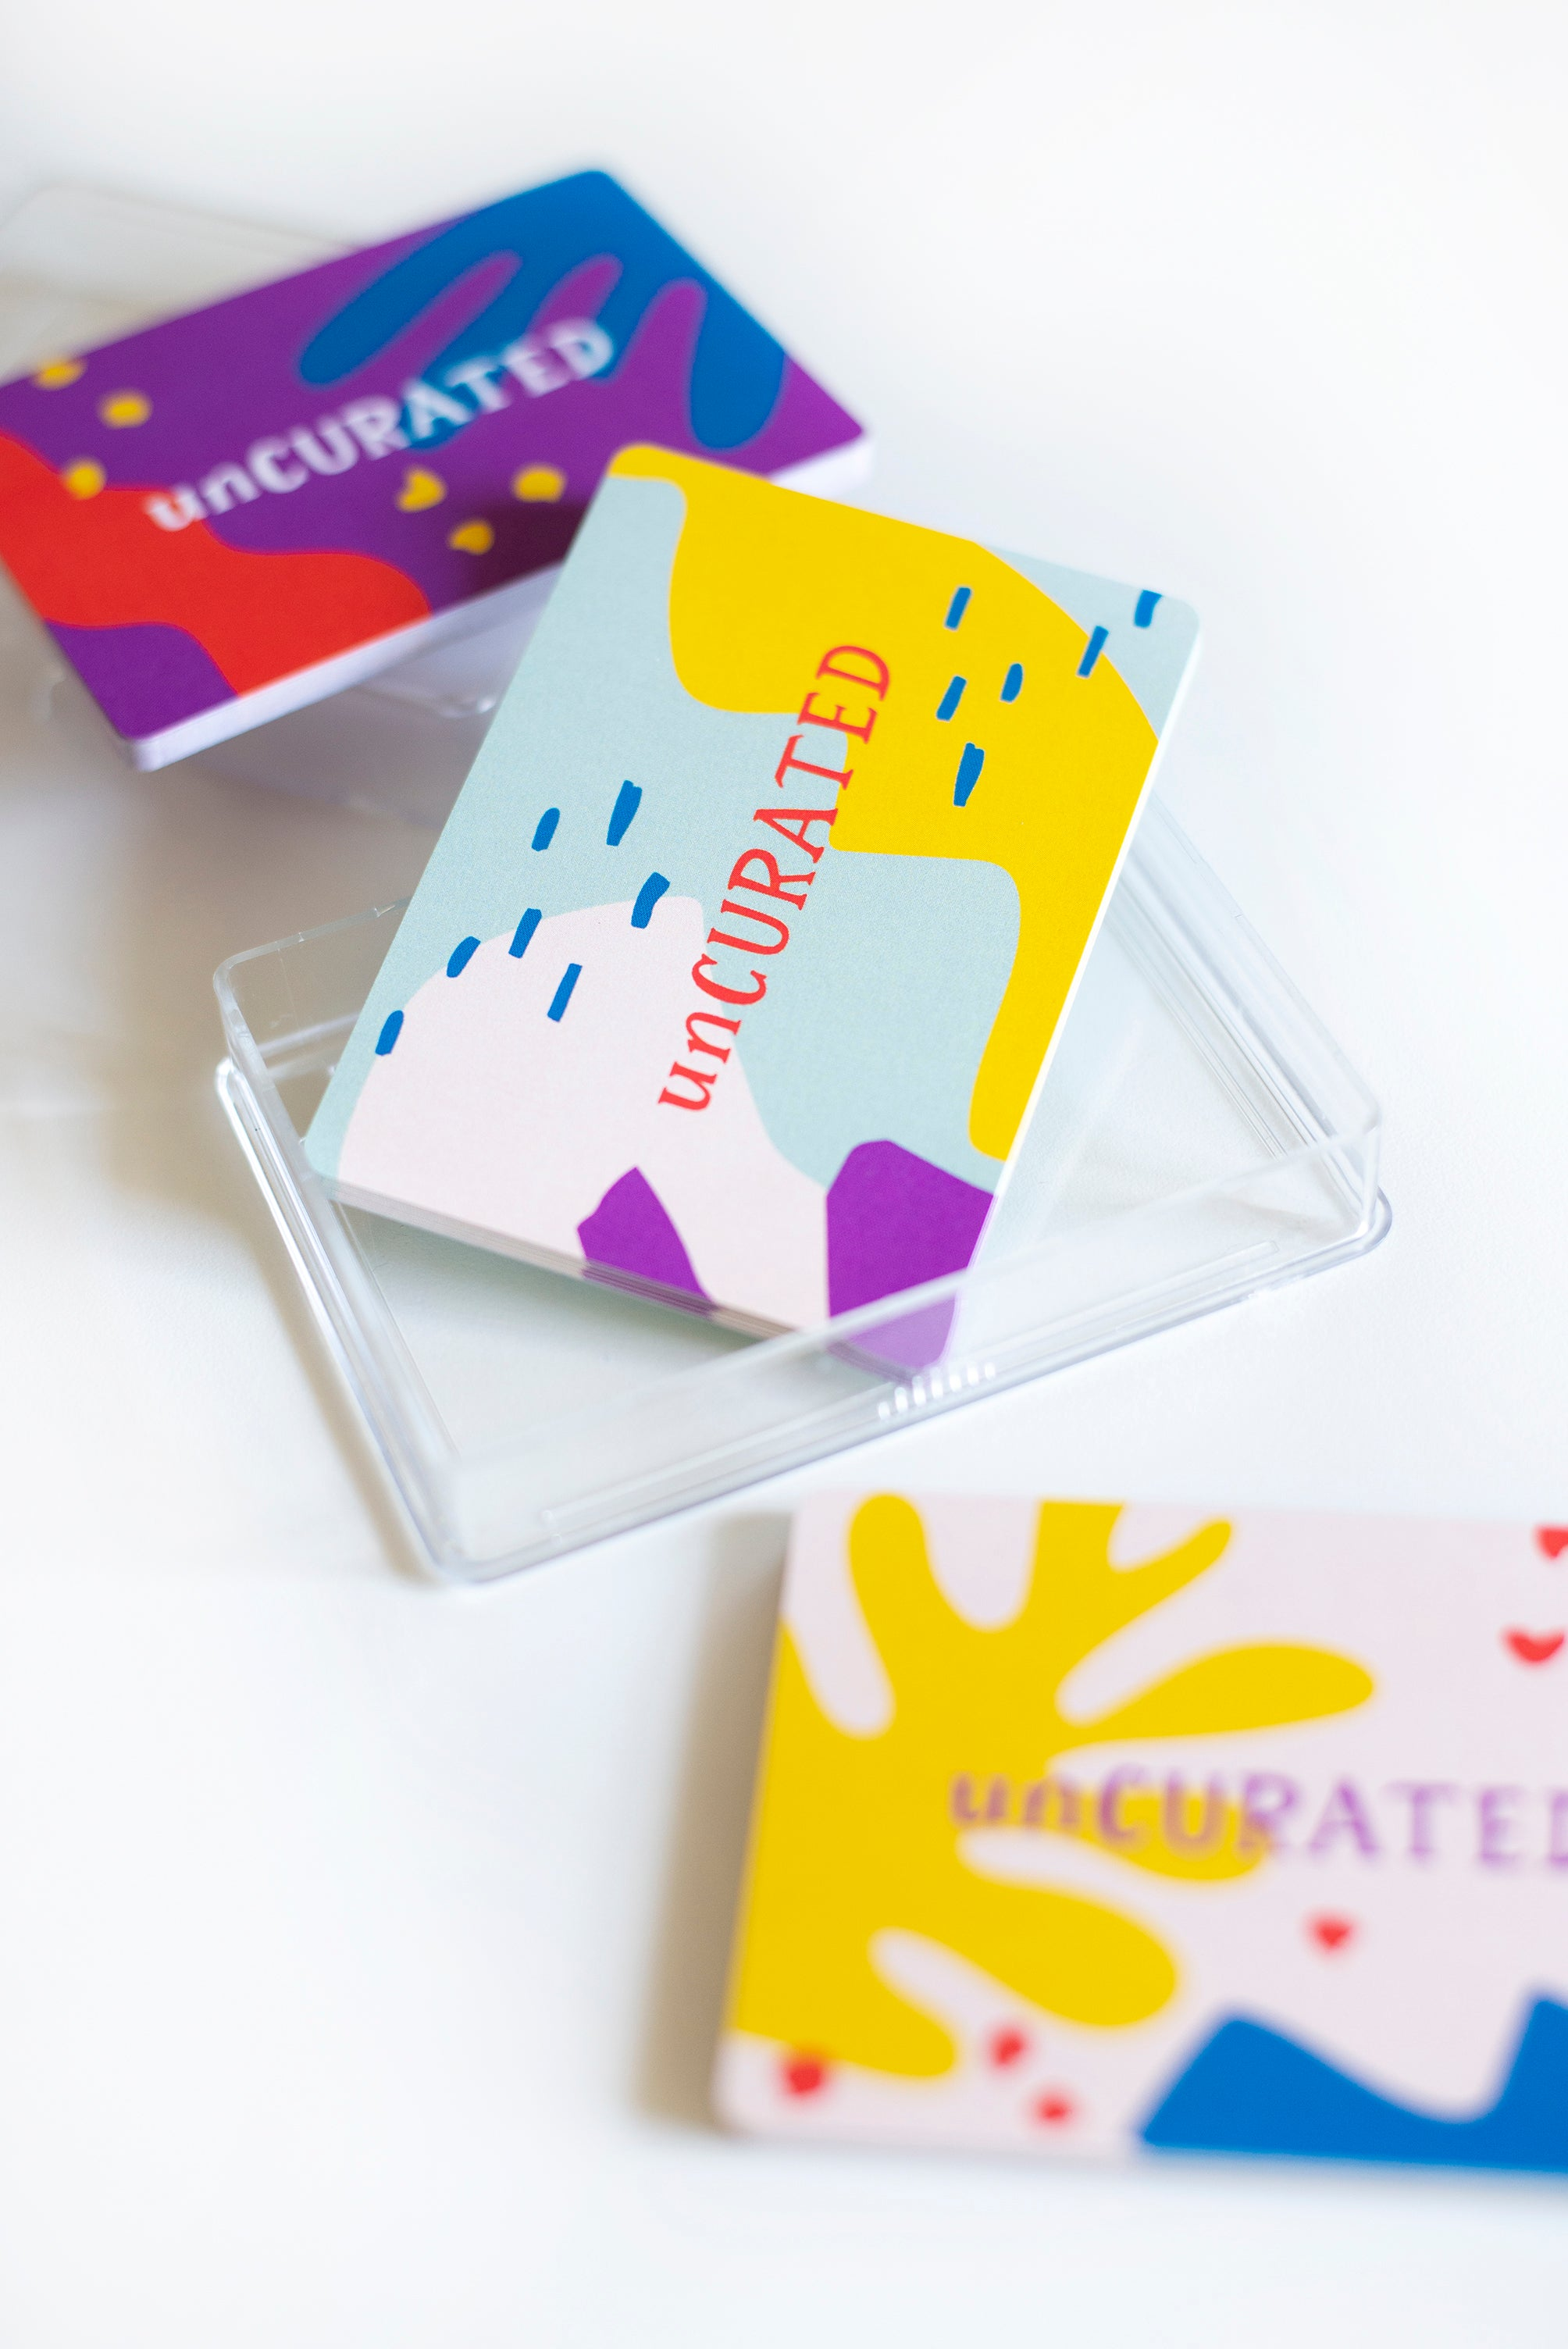 emotional wellness activities, card game for emotional wellness, connect with others, dinner party games for adults